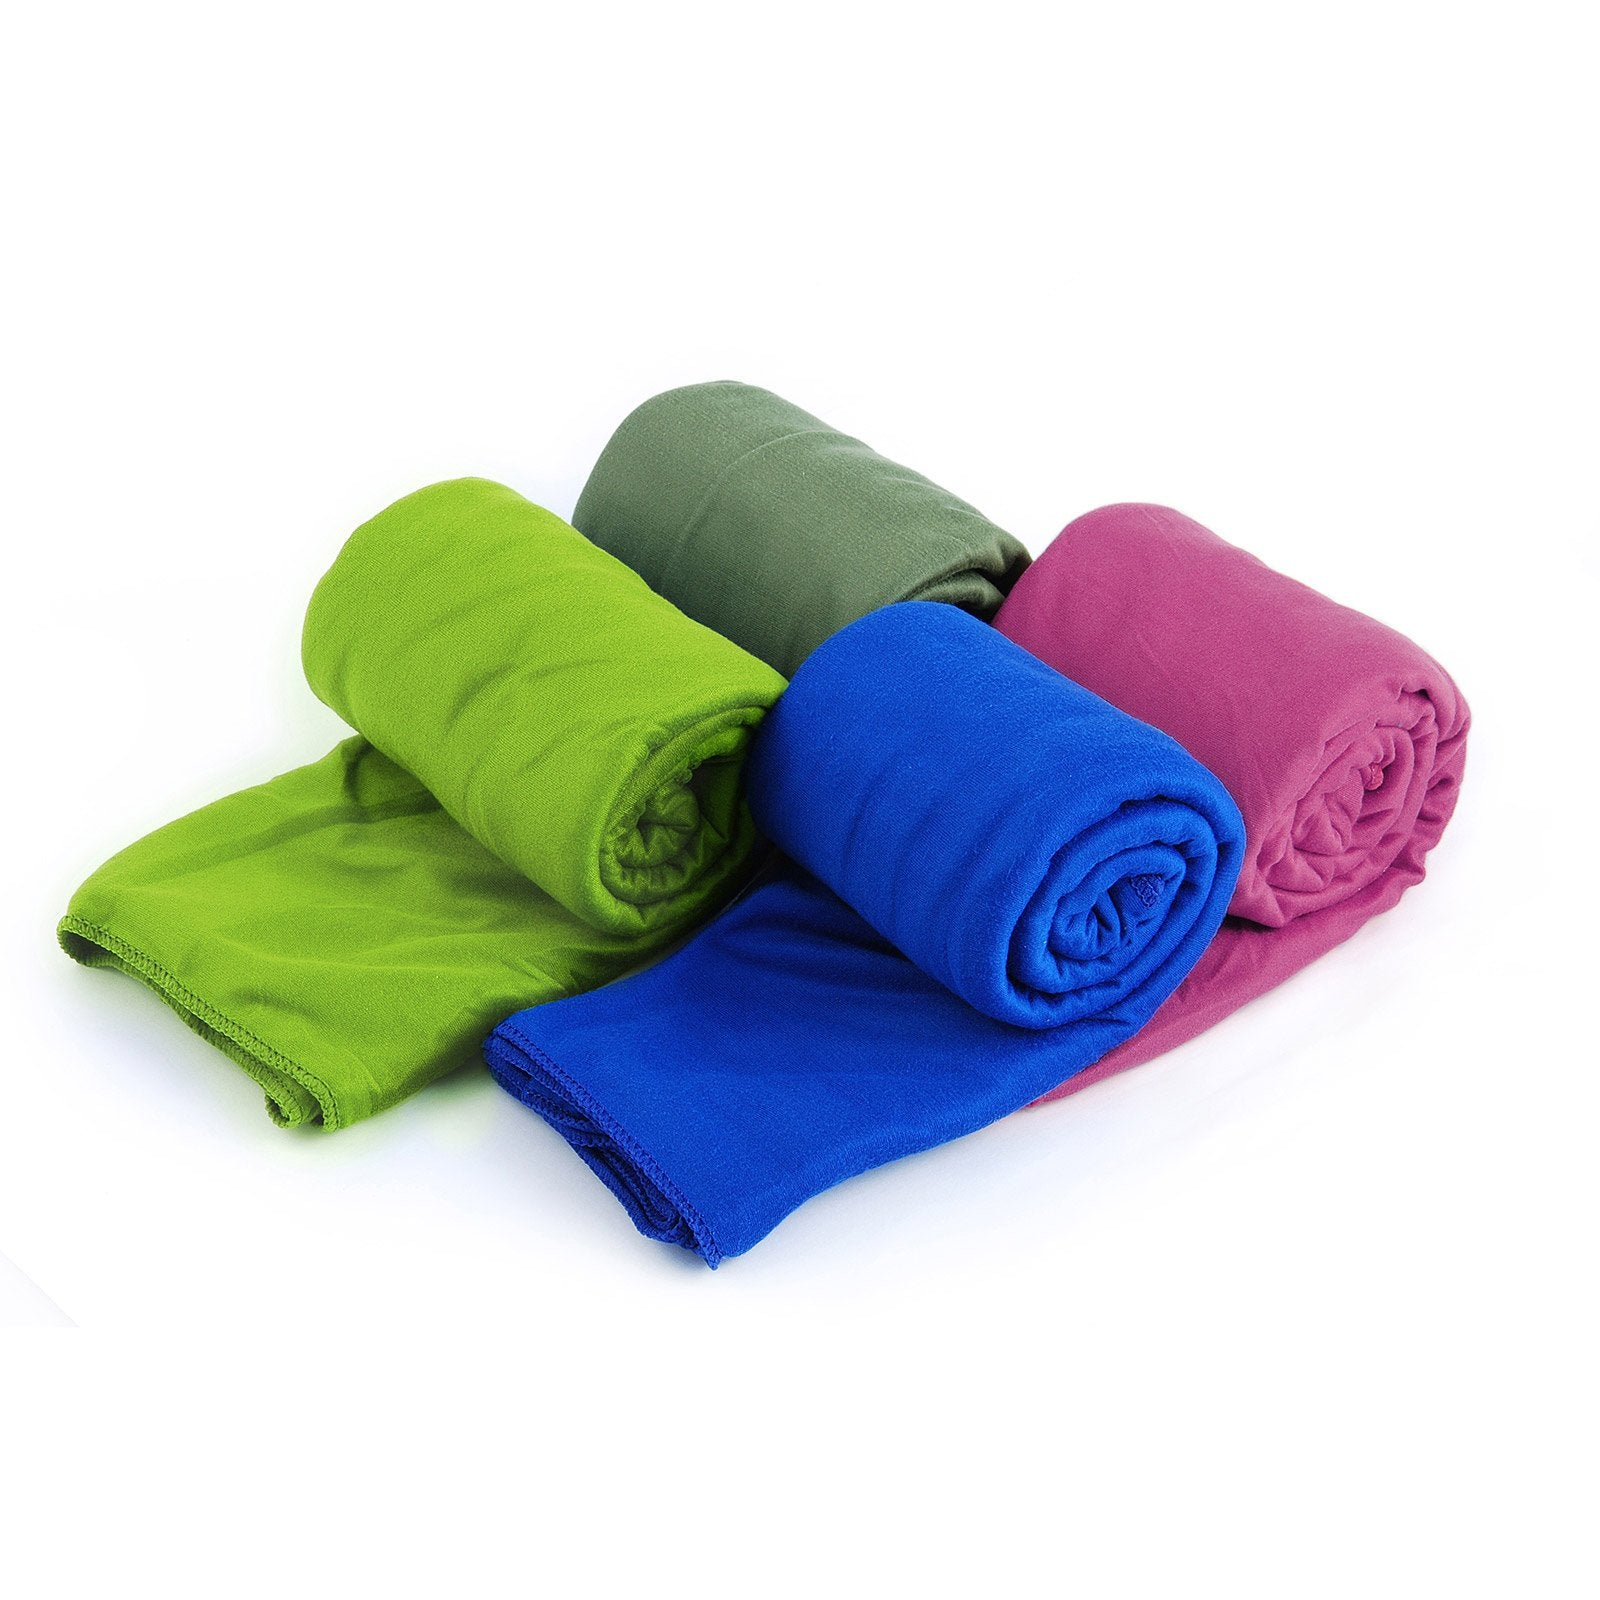 Sea to Summit Travel Pocket Towel - Medium